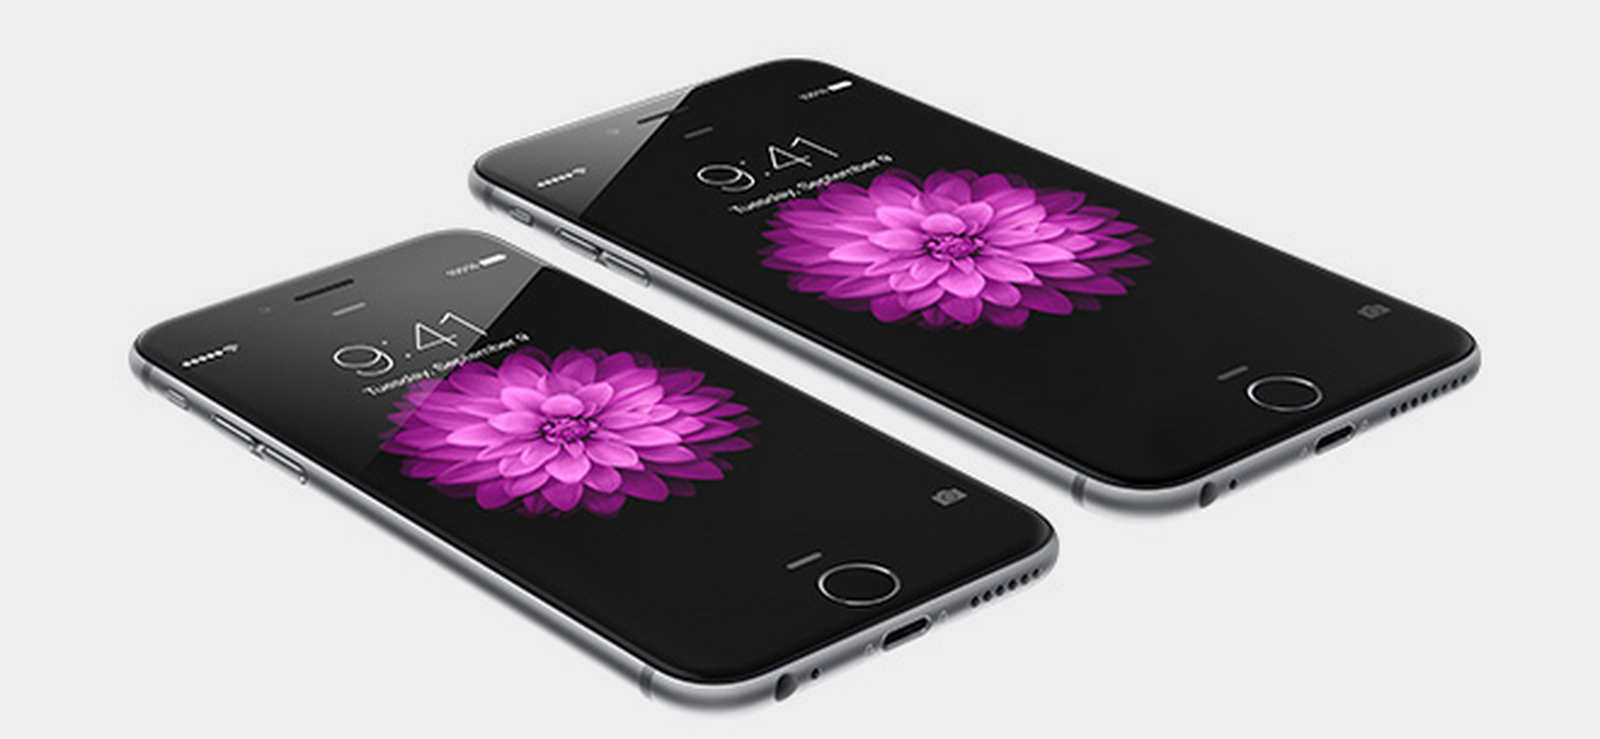 Apple Said to Be Stopping Use of TLC NAND Flash in iPhone ...